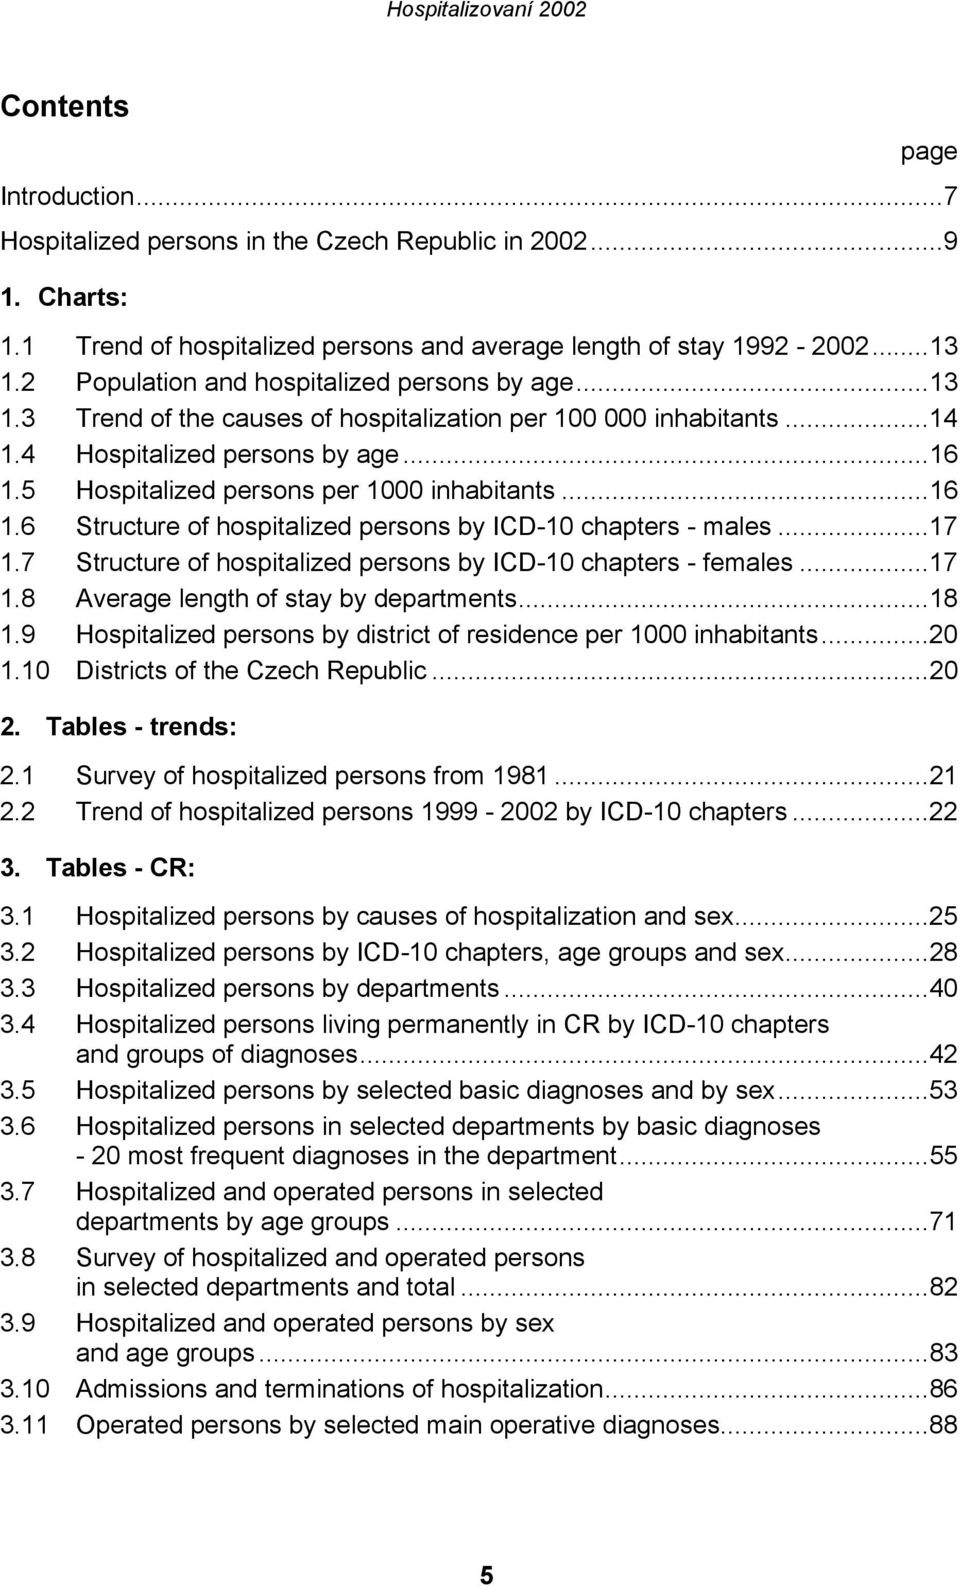 5 Hospitalized persons per 1000 inhabitants...16 1.6 Structure of hospitalized persons by ICD-10 chapters - males...17 1.7 Structure of hospitalized persons by ICD-10 chapters - females...17 1.8 Average length of stay by departments.